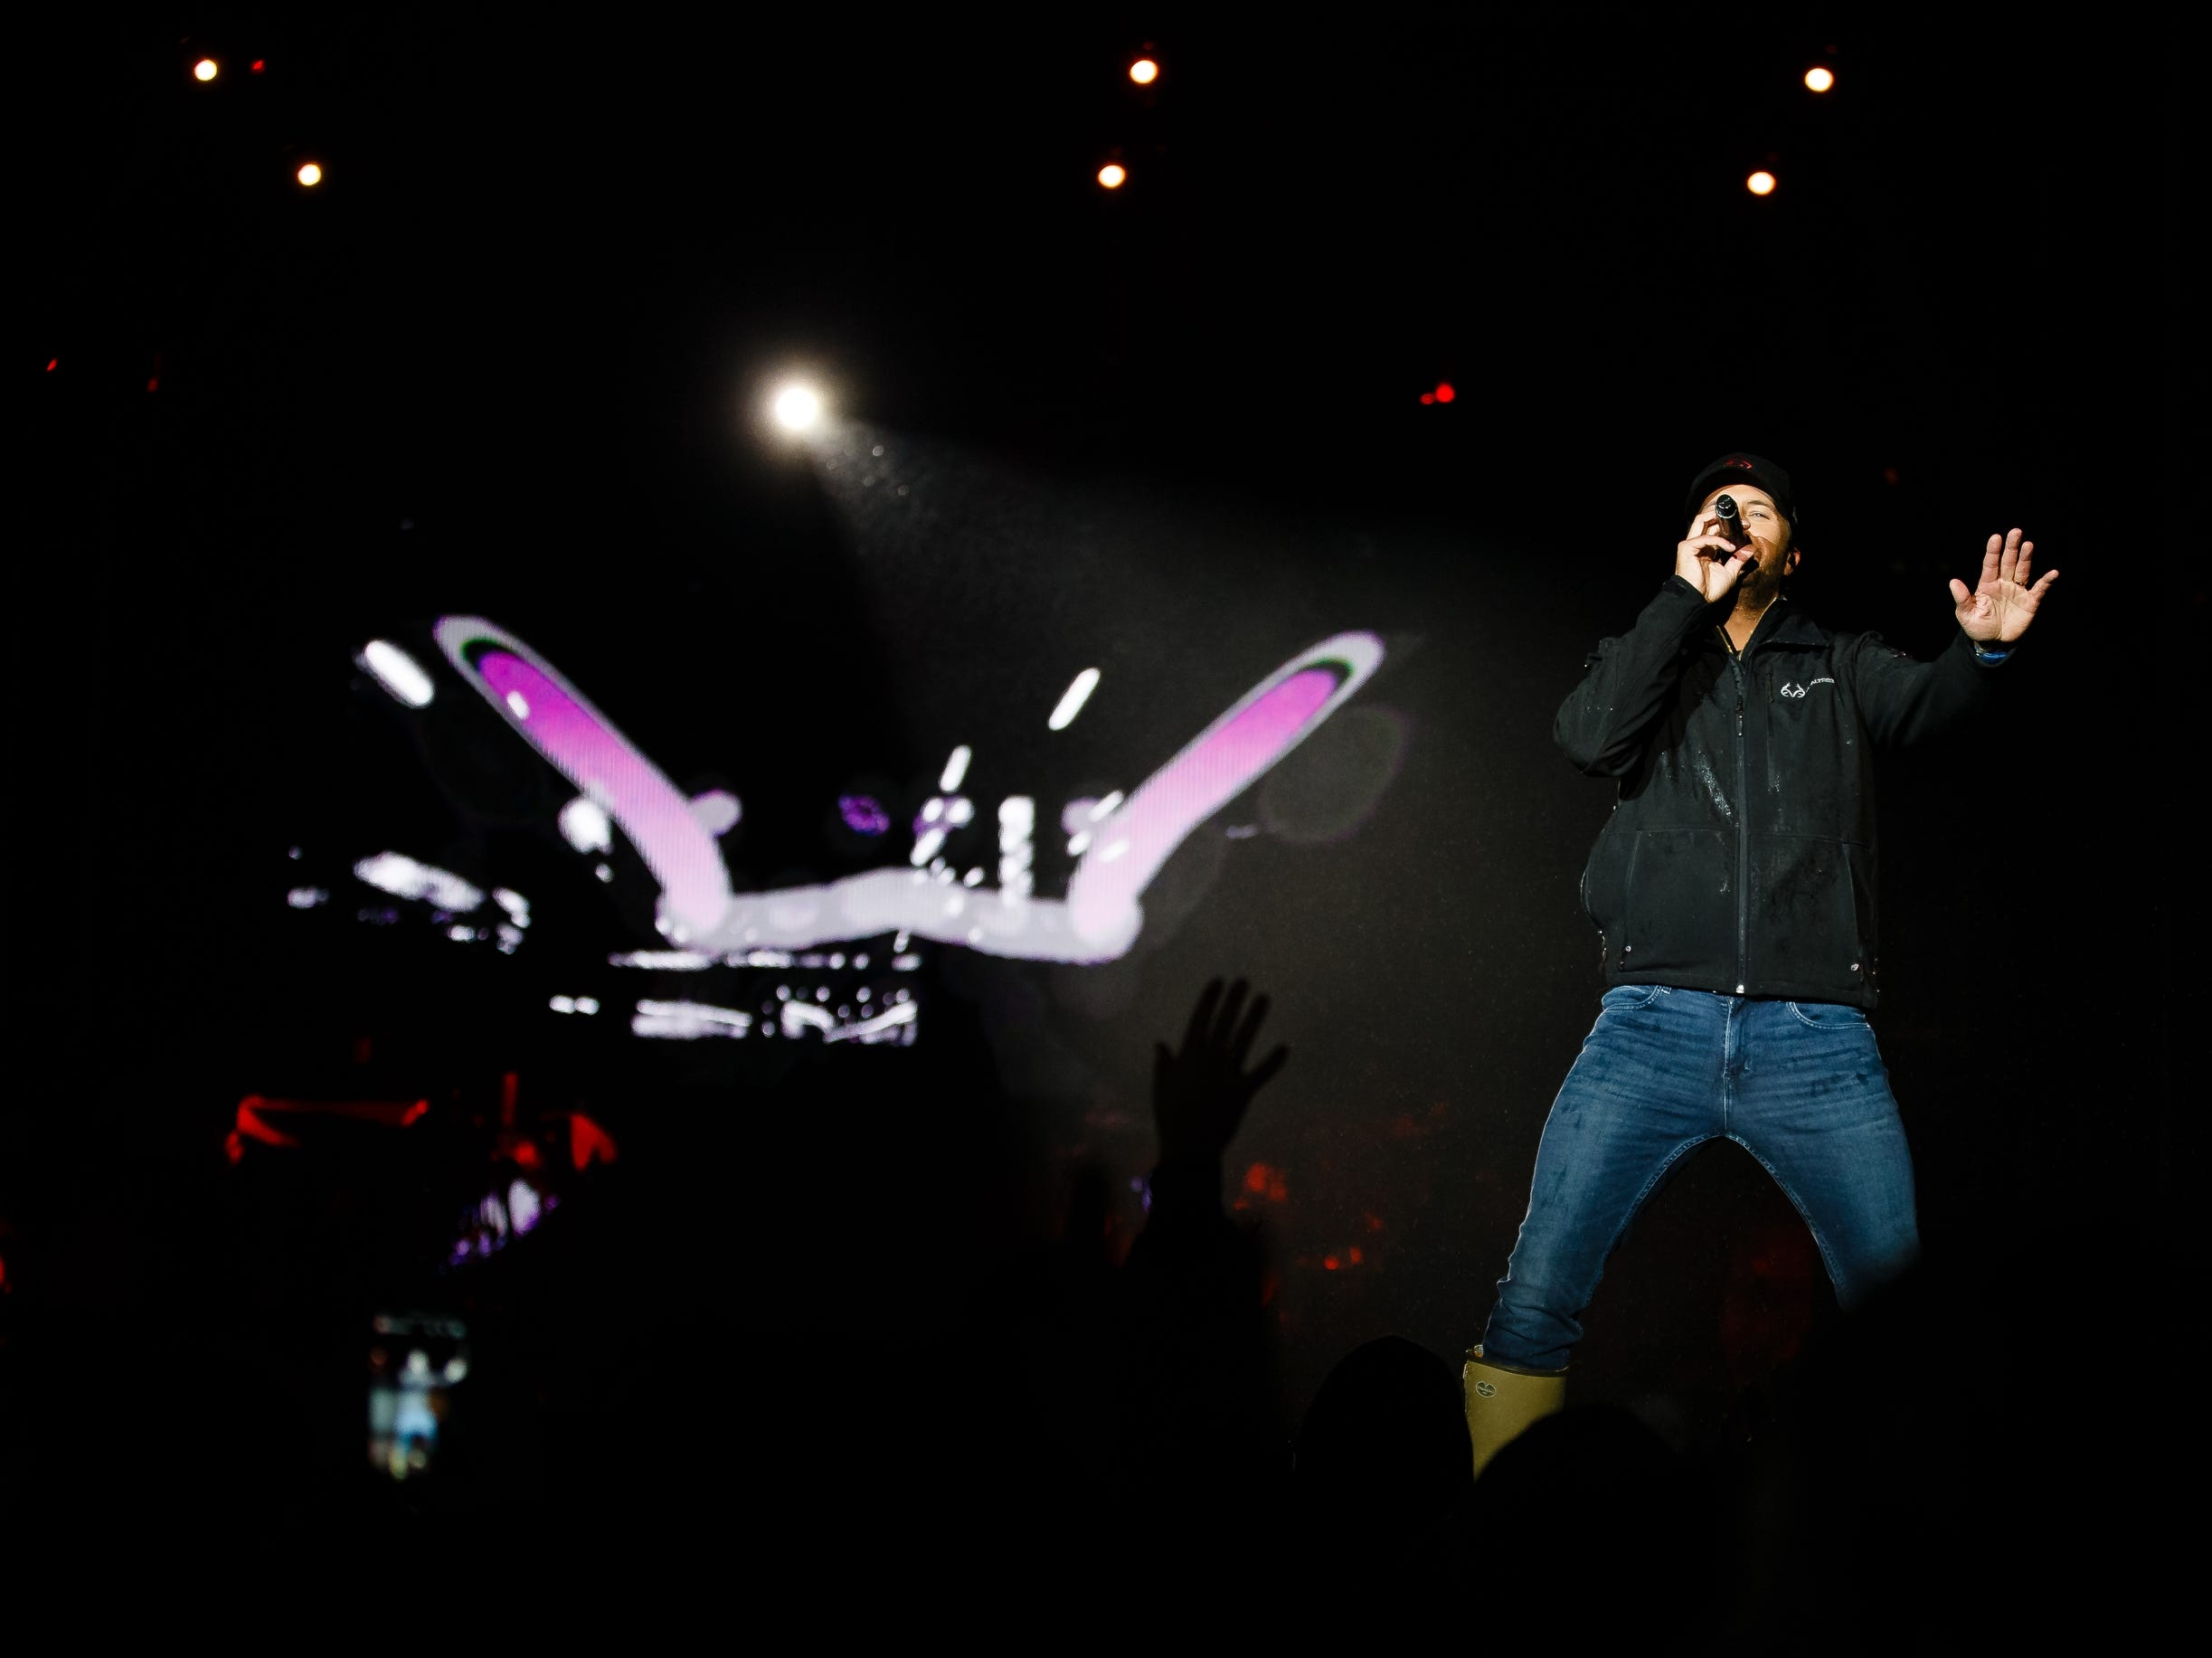 Luke Bryan performs during his Farm Tour on Saturday, Sept. 29, 2018 in Boone.